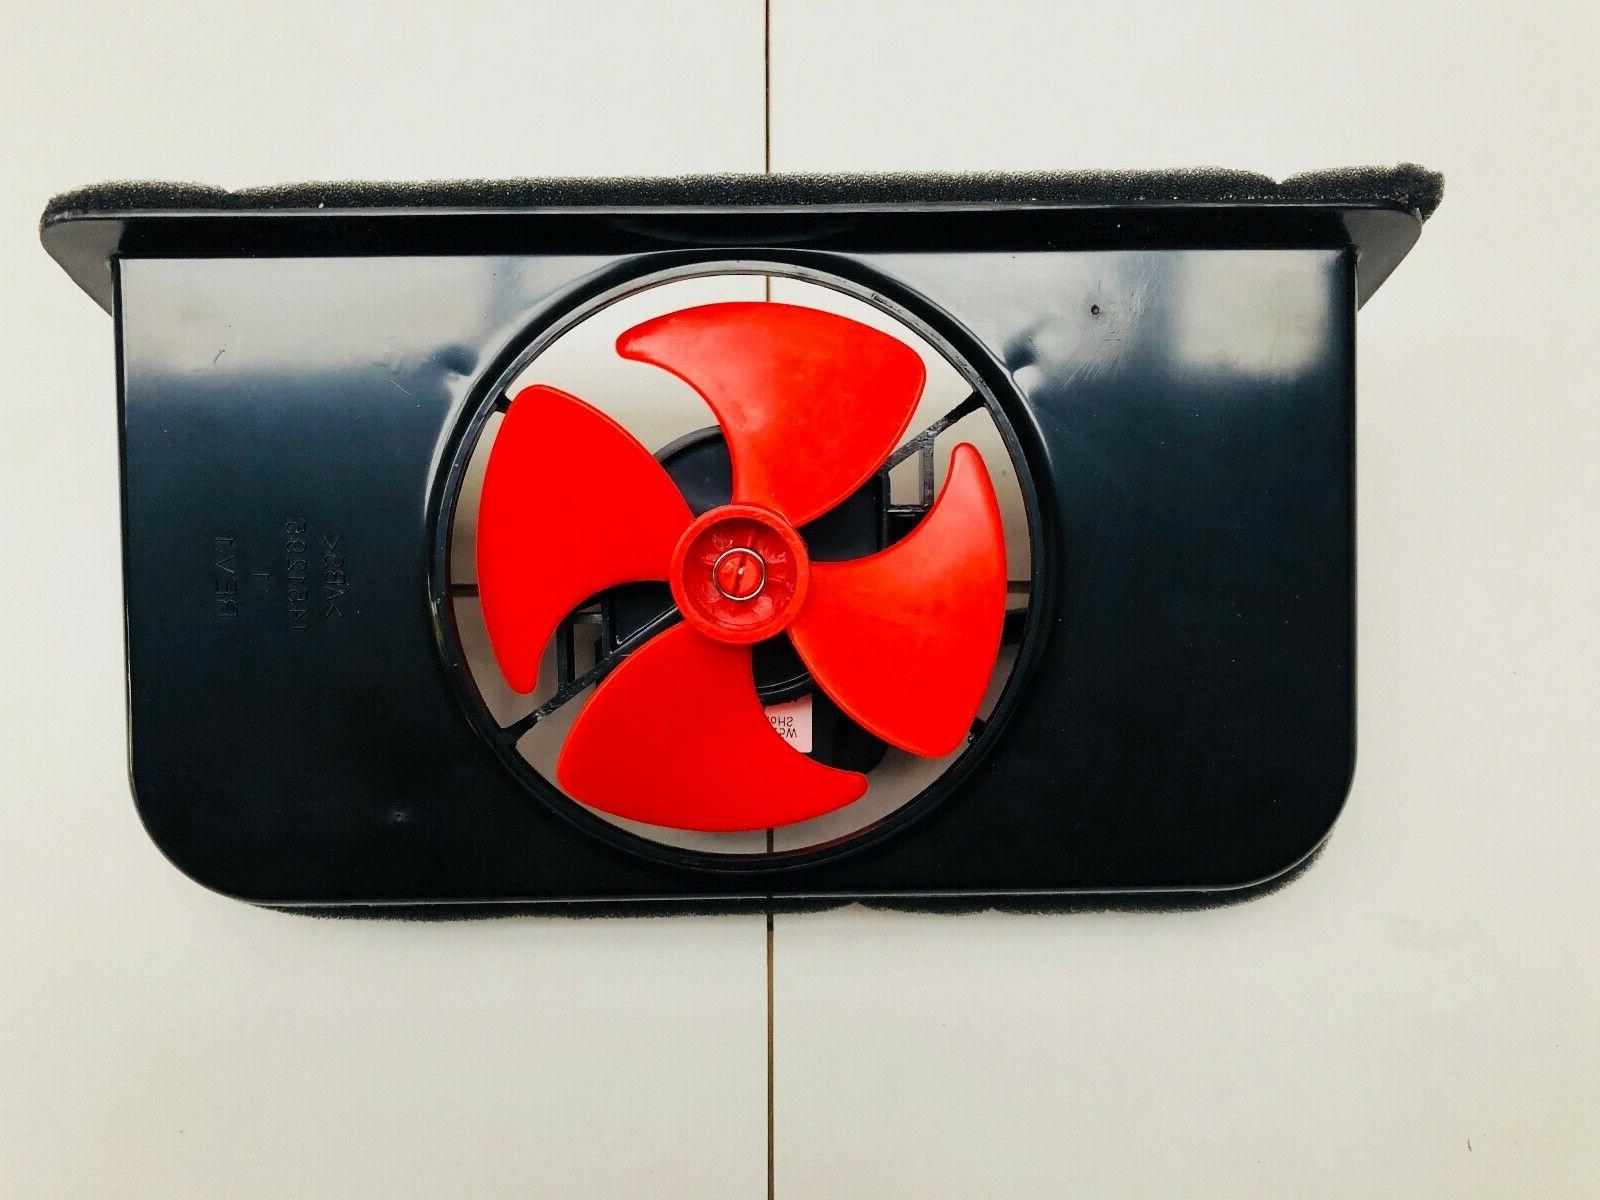 genuine side by side fridge fan motor